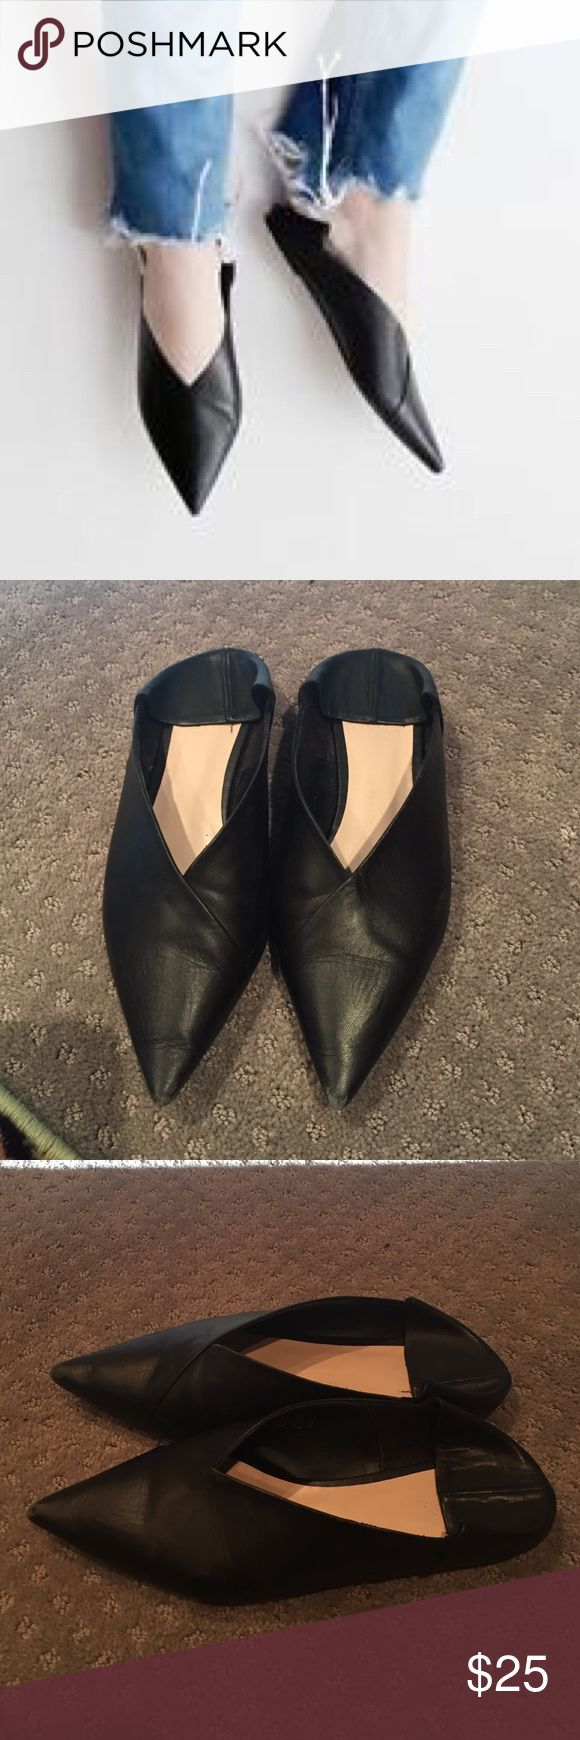 ZARA Black Leather Babouche Slip Ons 36 Blogger favorite!! Zara babouche slippers. Their take on the Celine SS16 shoe. 36 Zara Shoes Flats & Loafers